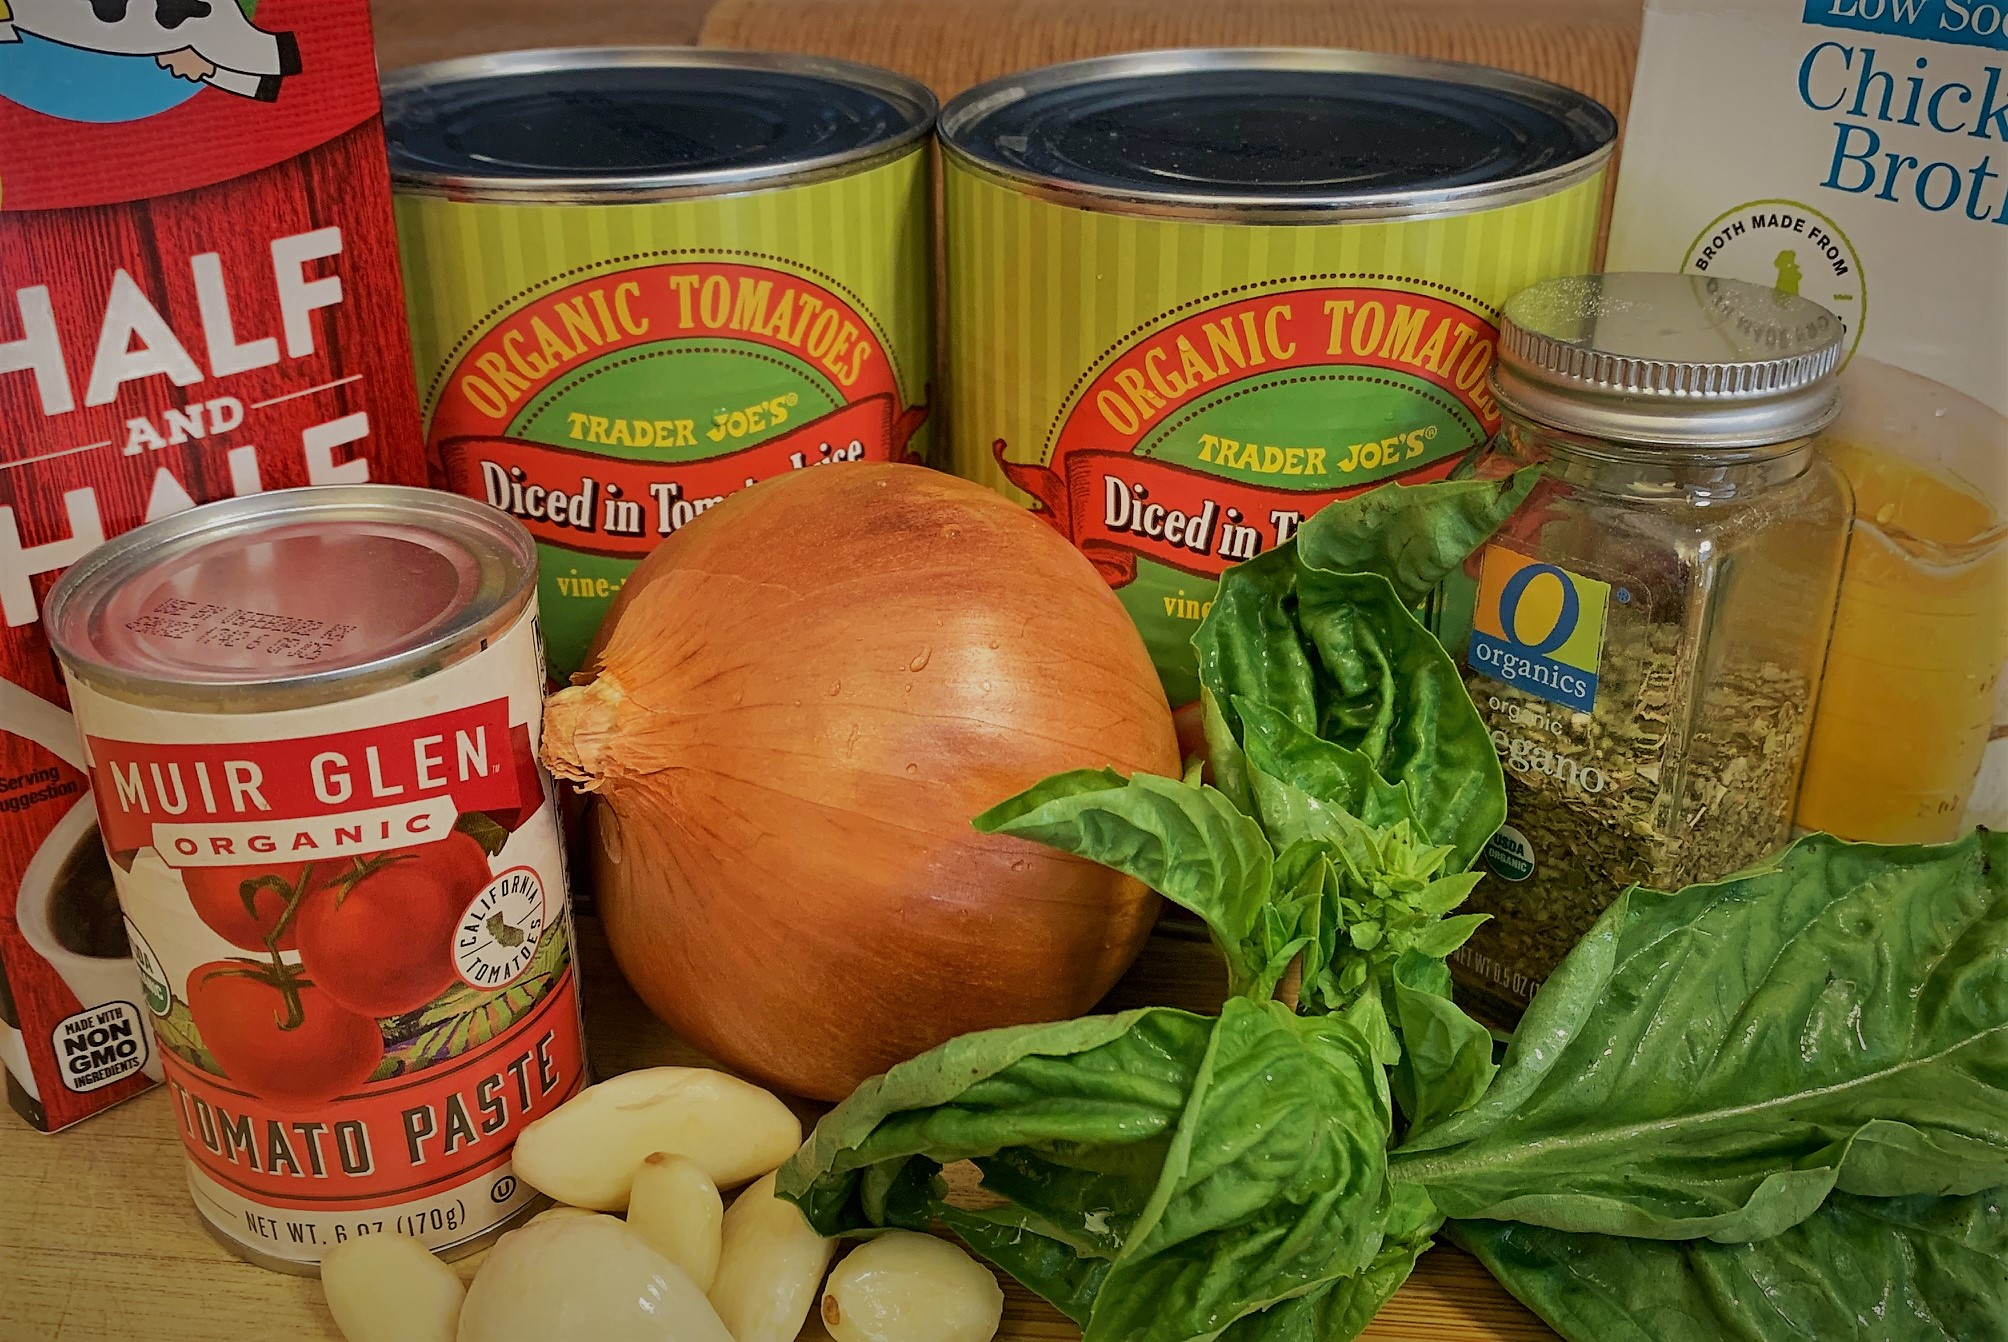 The ingredients for our Tomato Basil Soup from Jolly Holiday Bakery Cafe